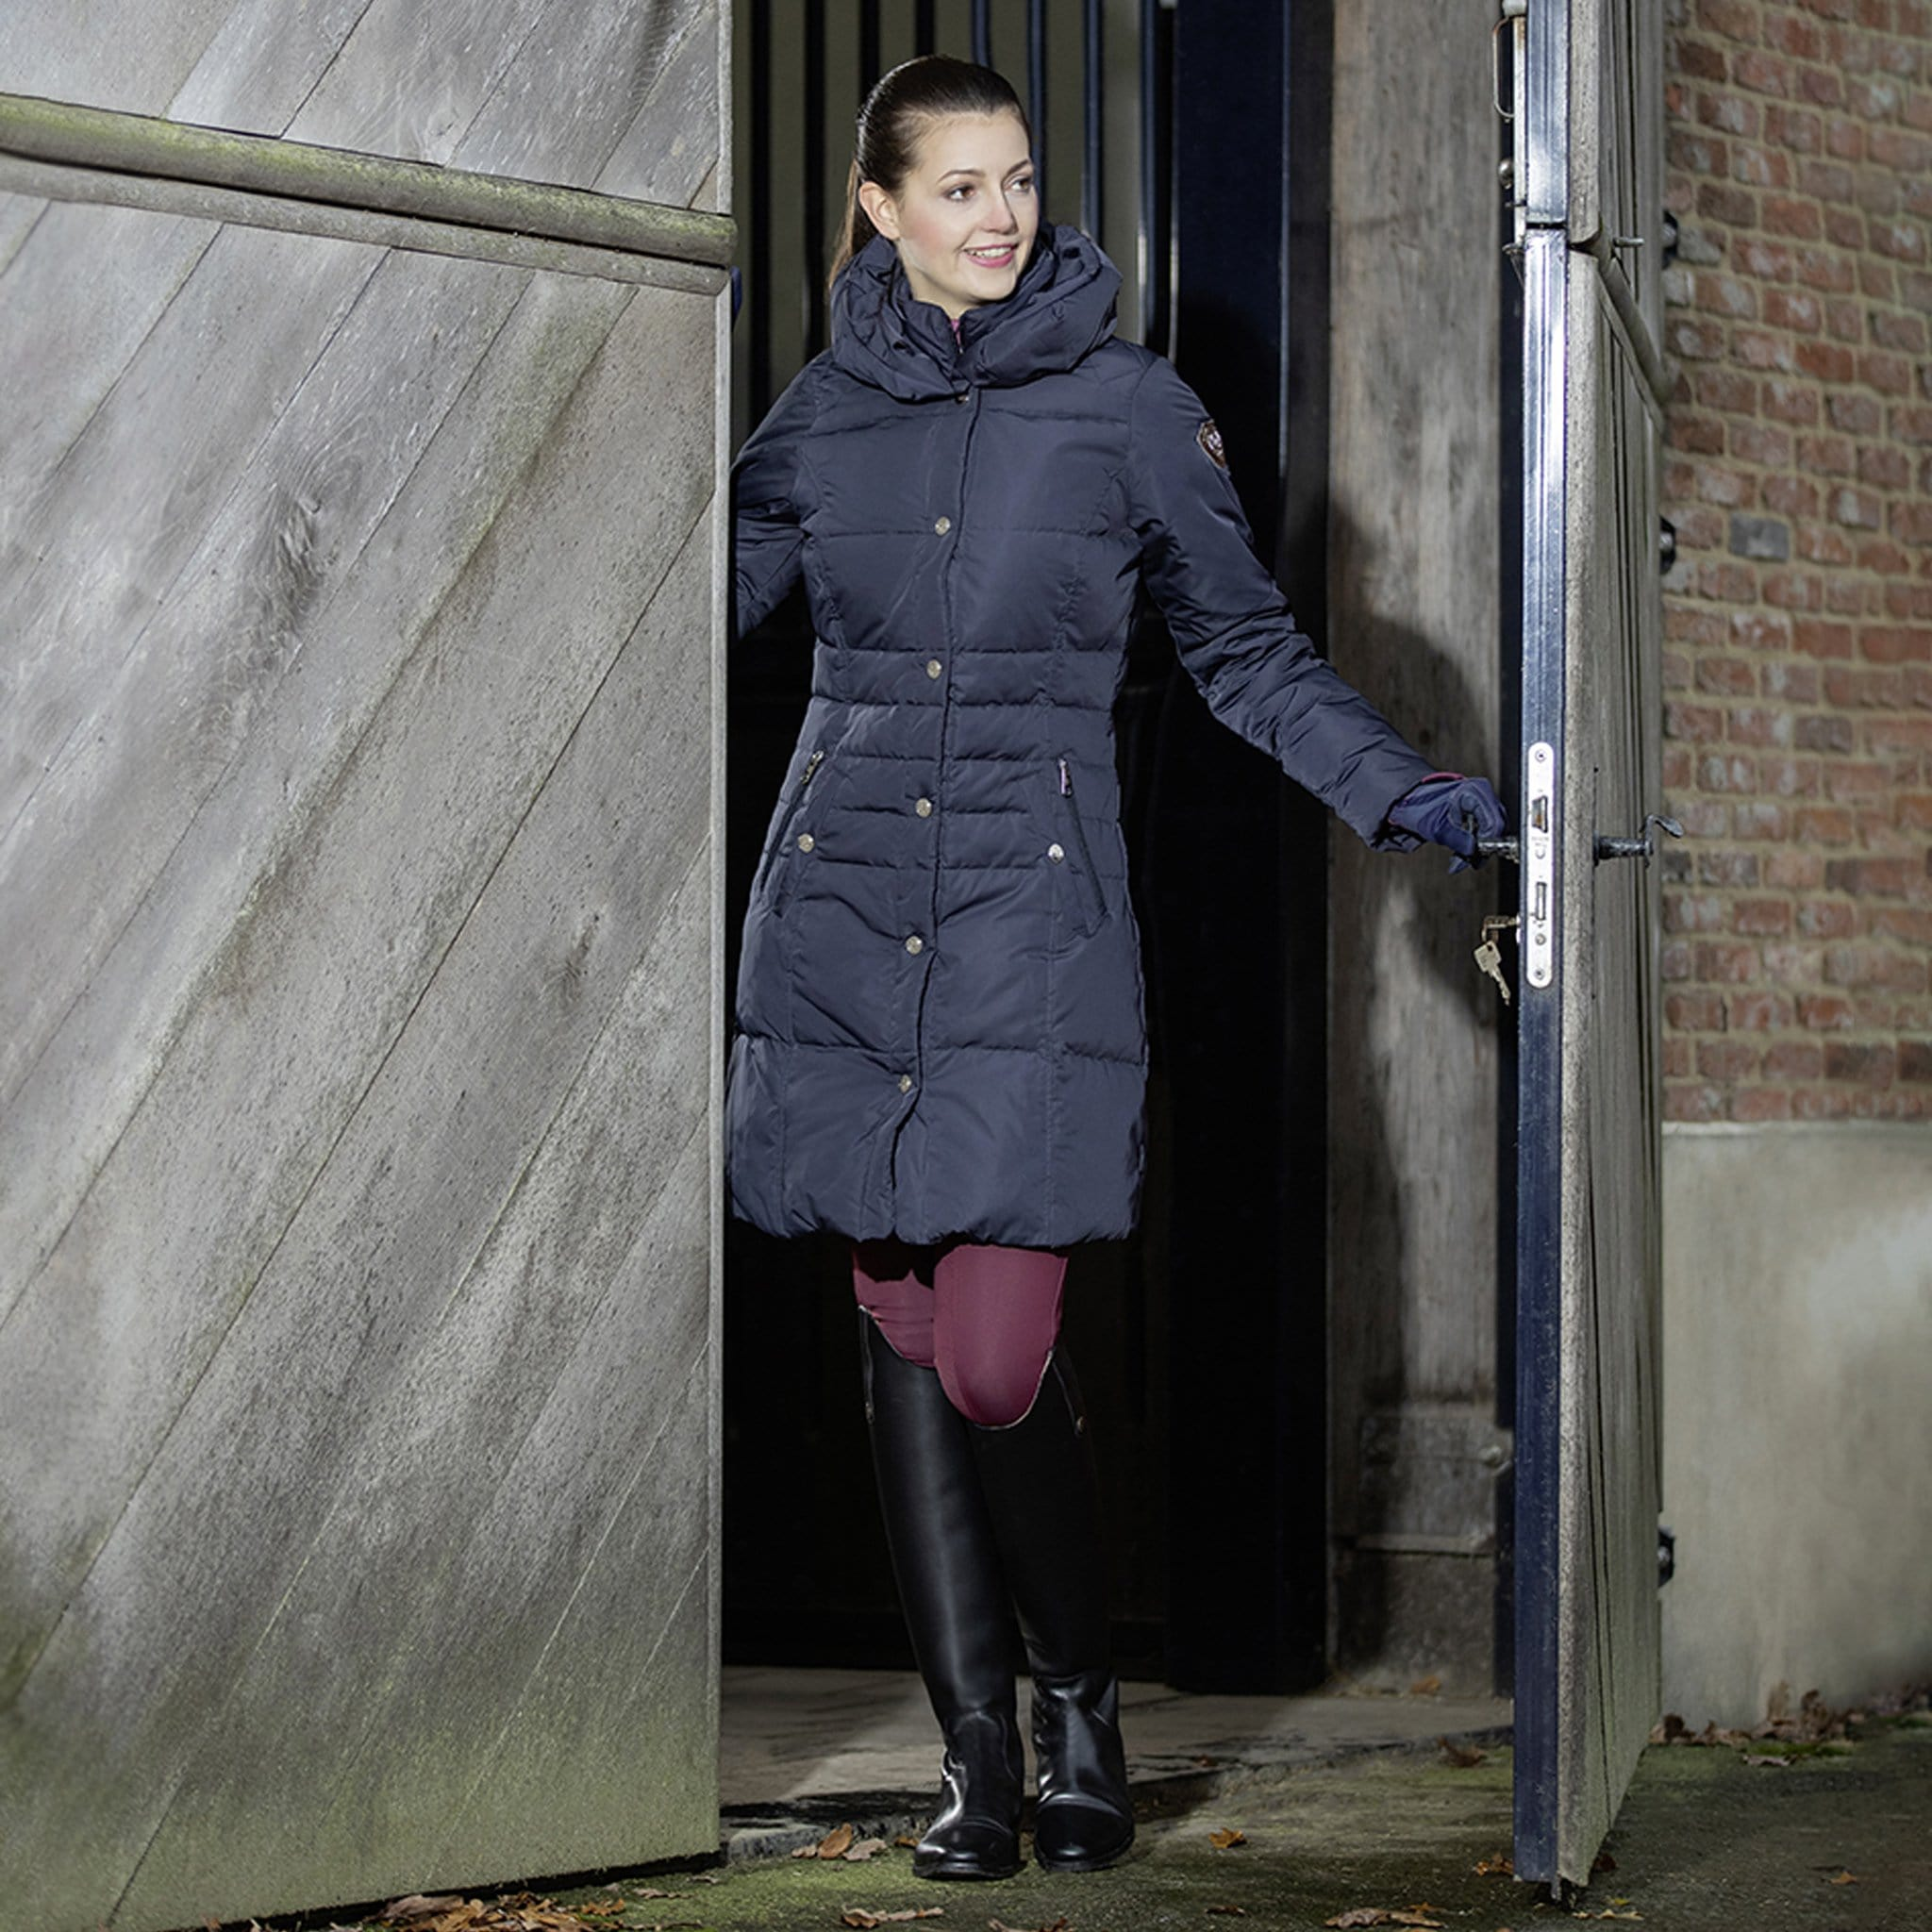 HKM Lauria Garrelli Paris Coat Navy 7080 On Model Front View In Barn Doorway